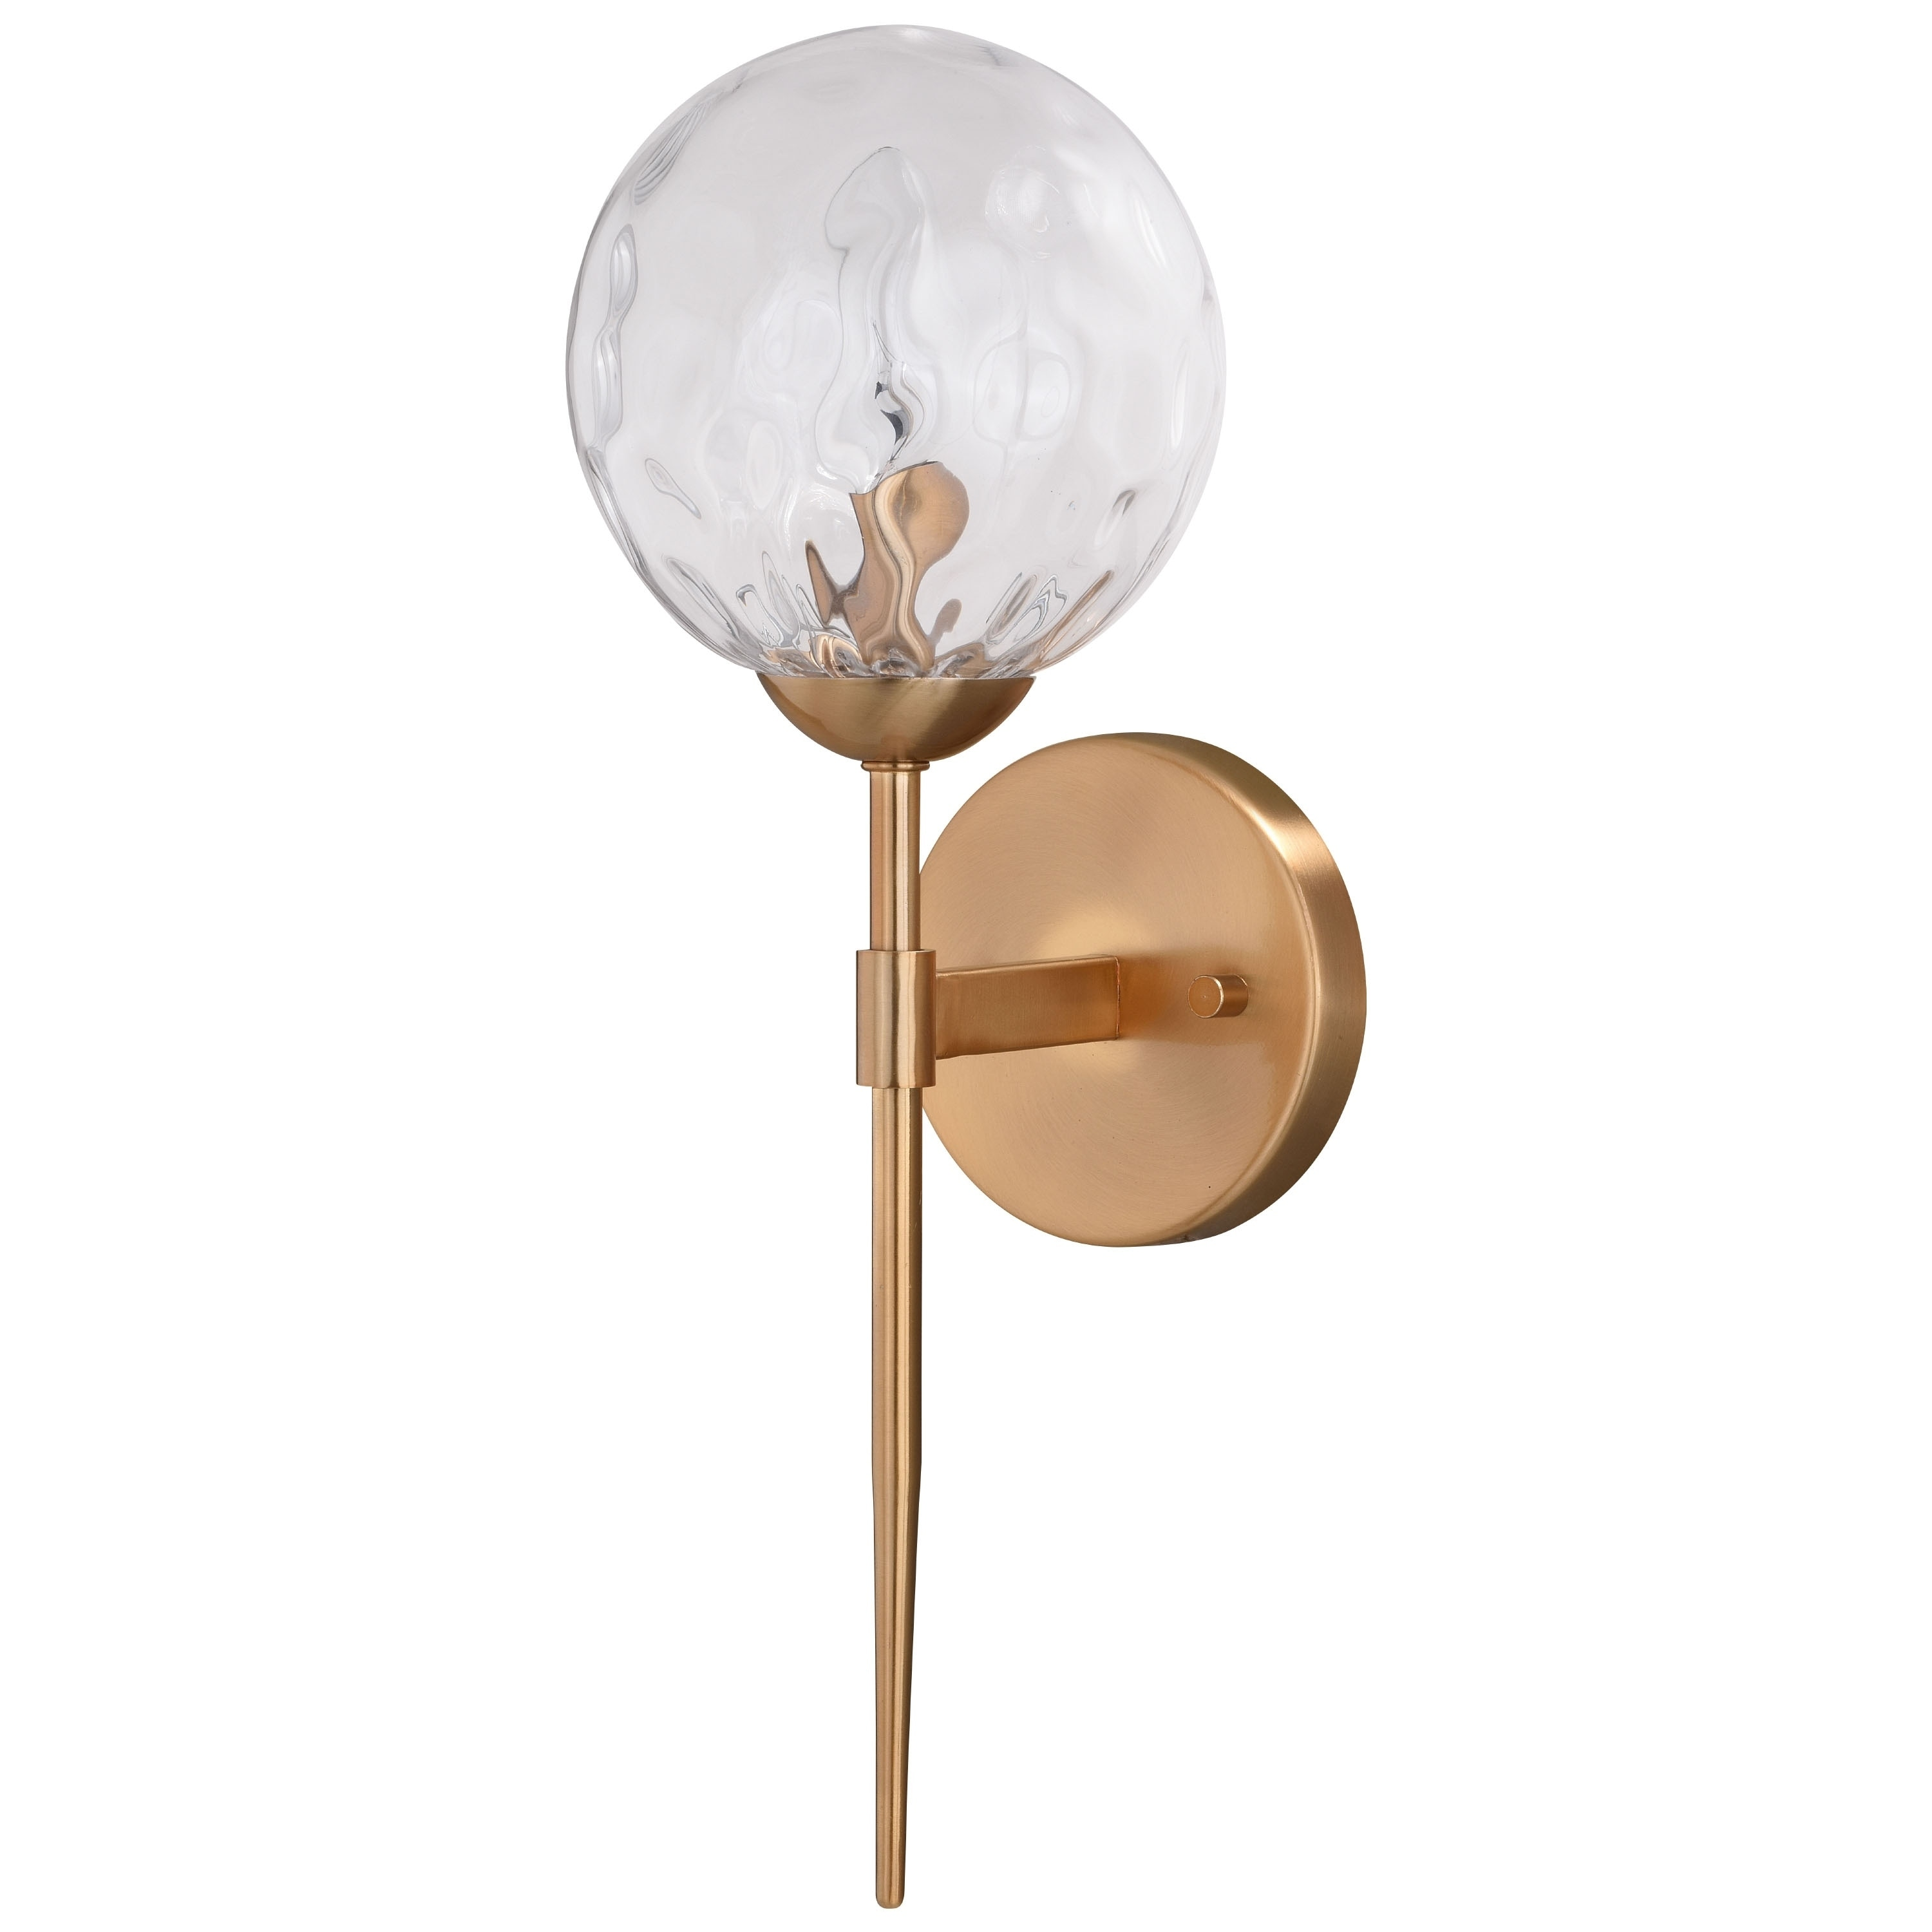 Picture of: Shop Black Friday Deals On Olson 1 Light Brass Mid Century Modern Wall Sconce Clear Globe Glass 6 In W X 16 5 In H X 7 In D Overstock 31040938